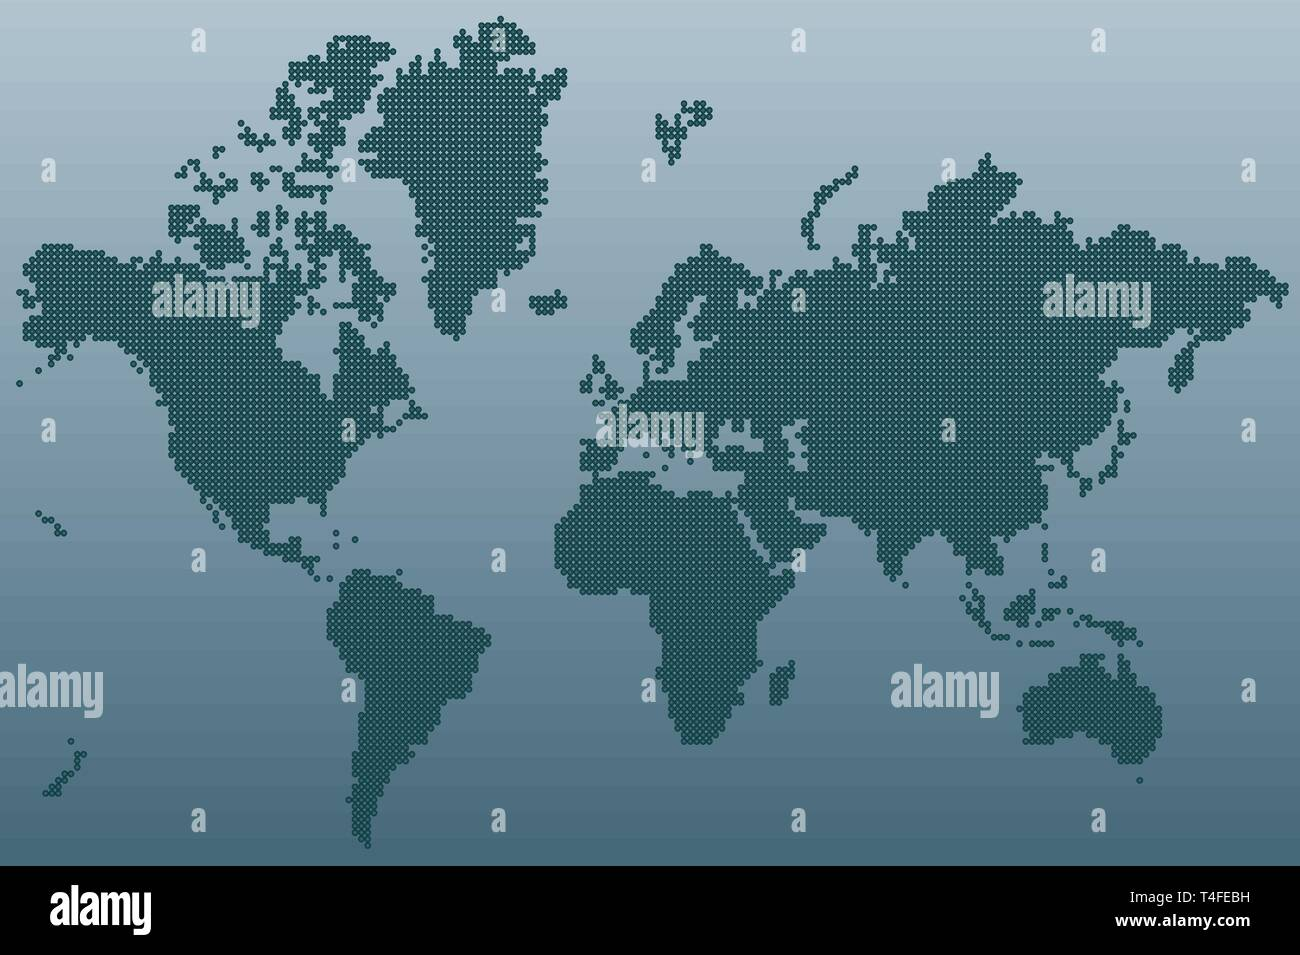 World map made with dots, vector illustration - Stock Vector